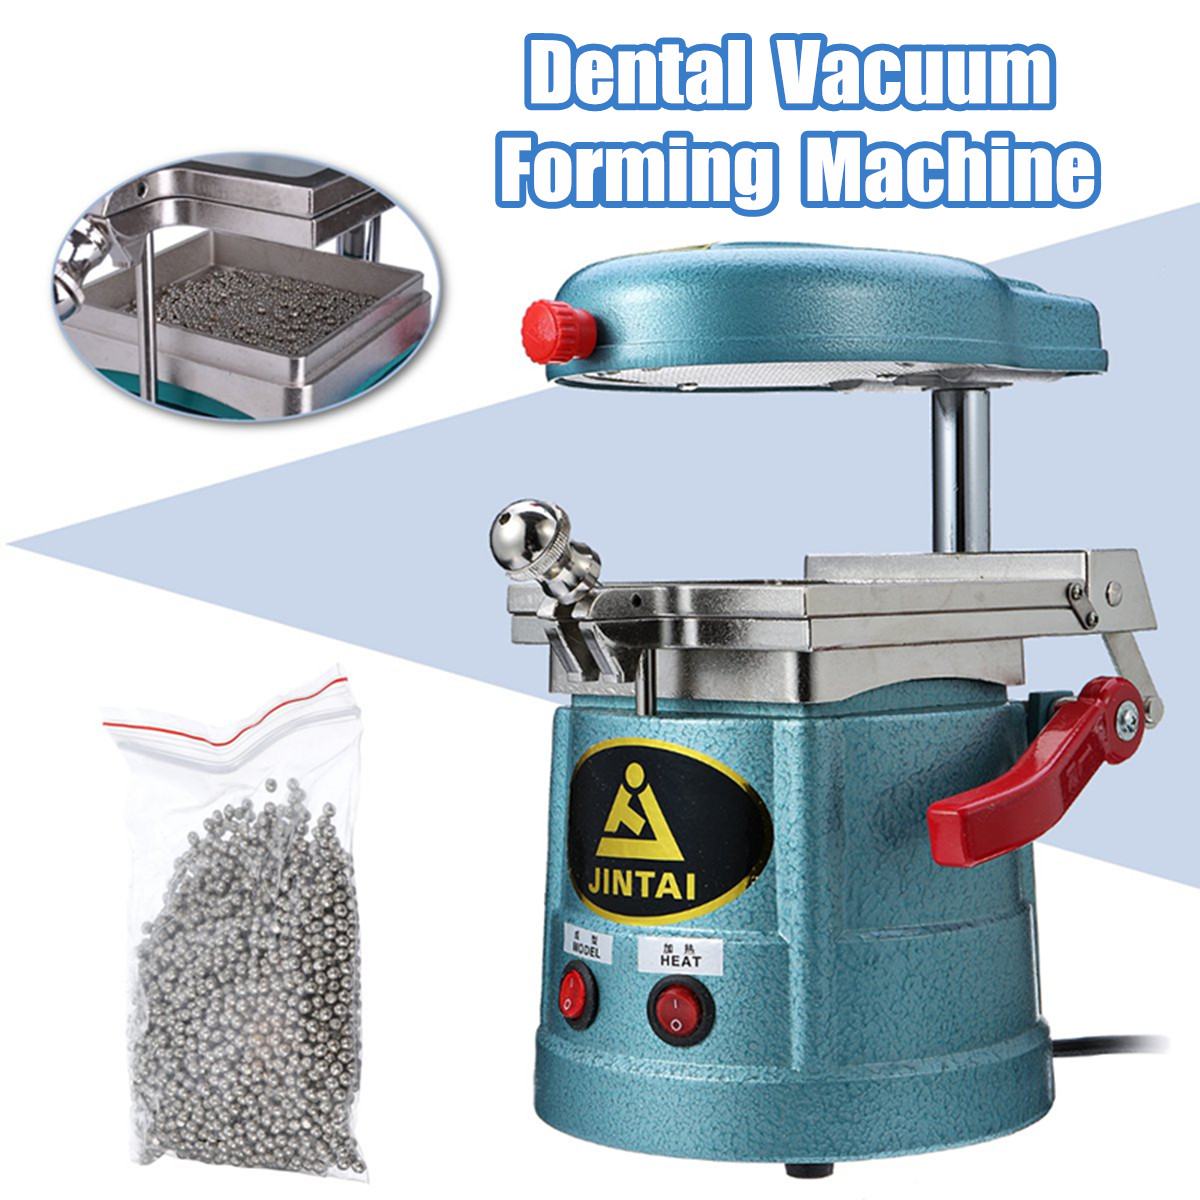 220V Dental Vacuum Former Forming Molding Machine Industrial Laminating Machine Dental Equipment Vacuum Forming Machine Tools